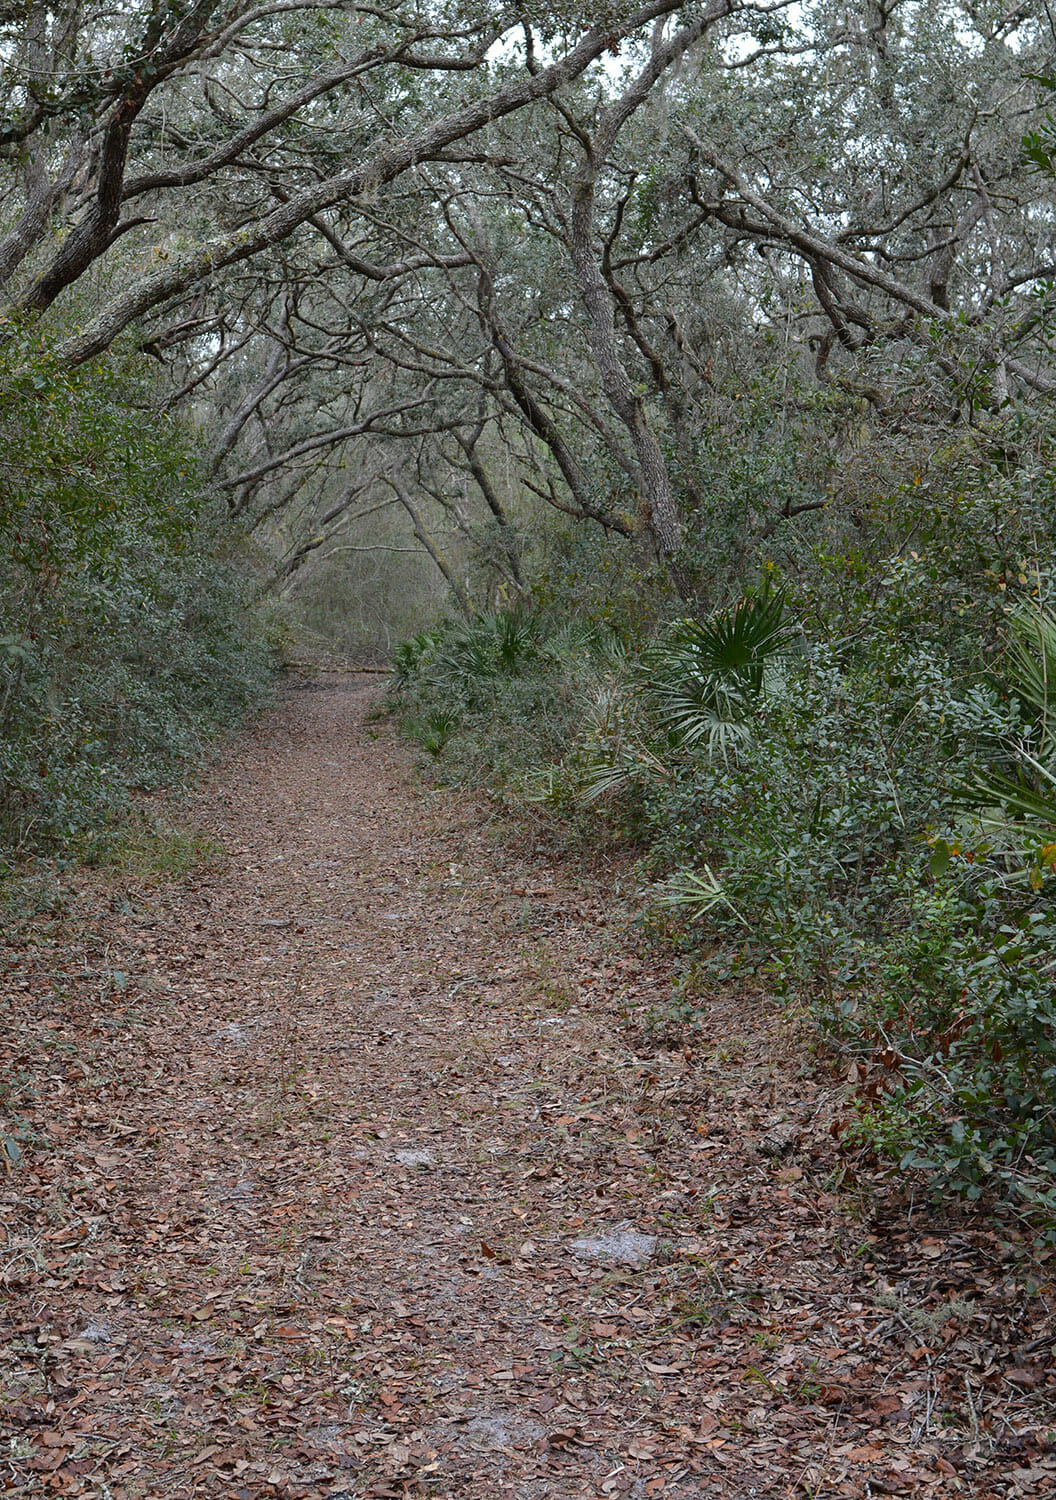 Using the Florida Trail and the Blue Loop Trail, hikers can explore a picturesque corner of Withlacoochee State Forest in Ridge Manor along a 3.9-mile loop.